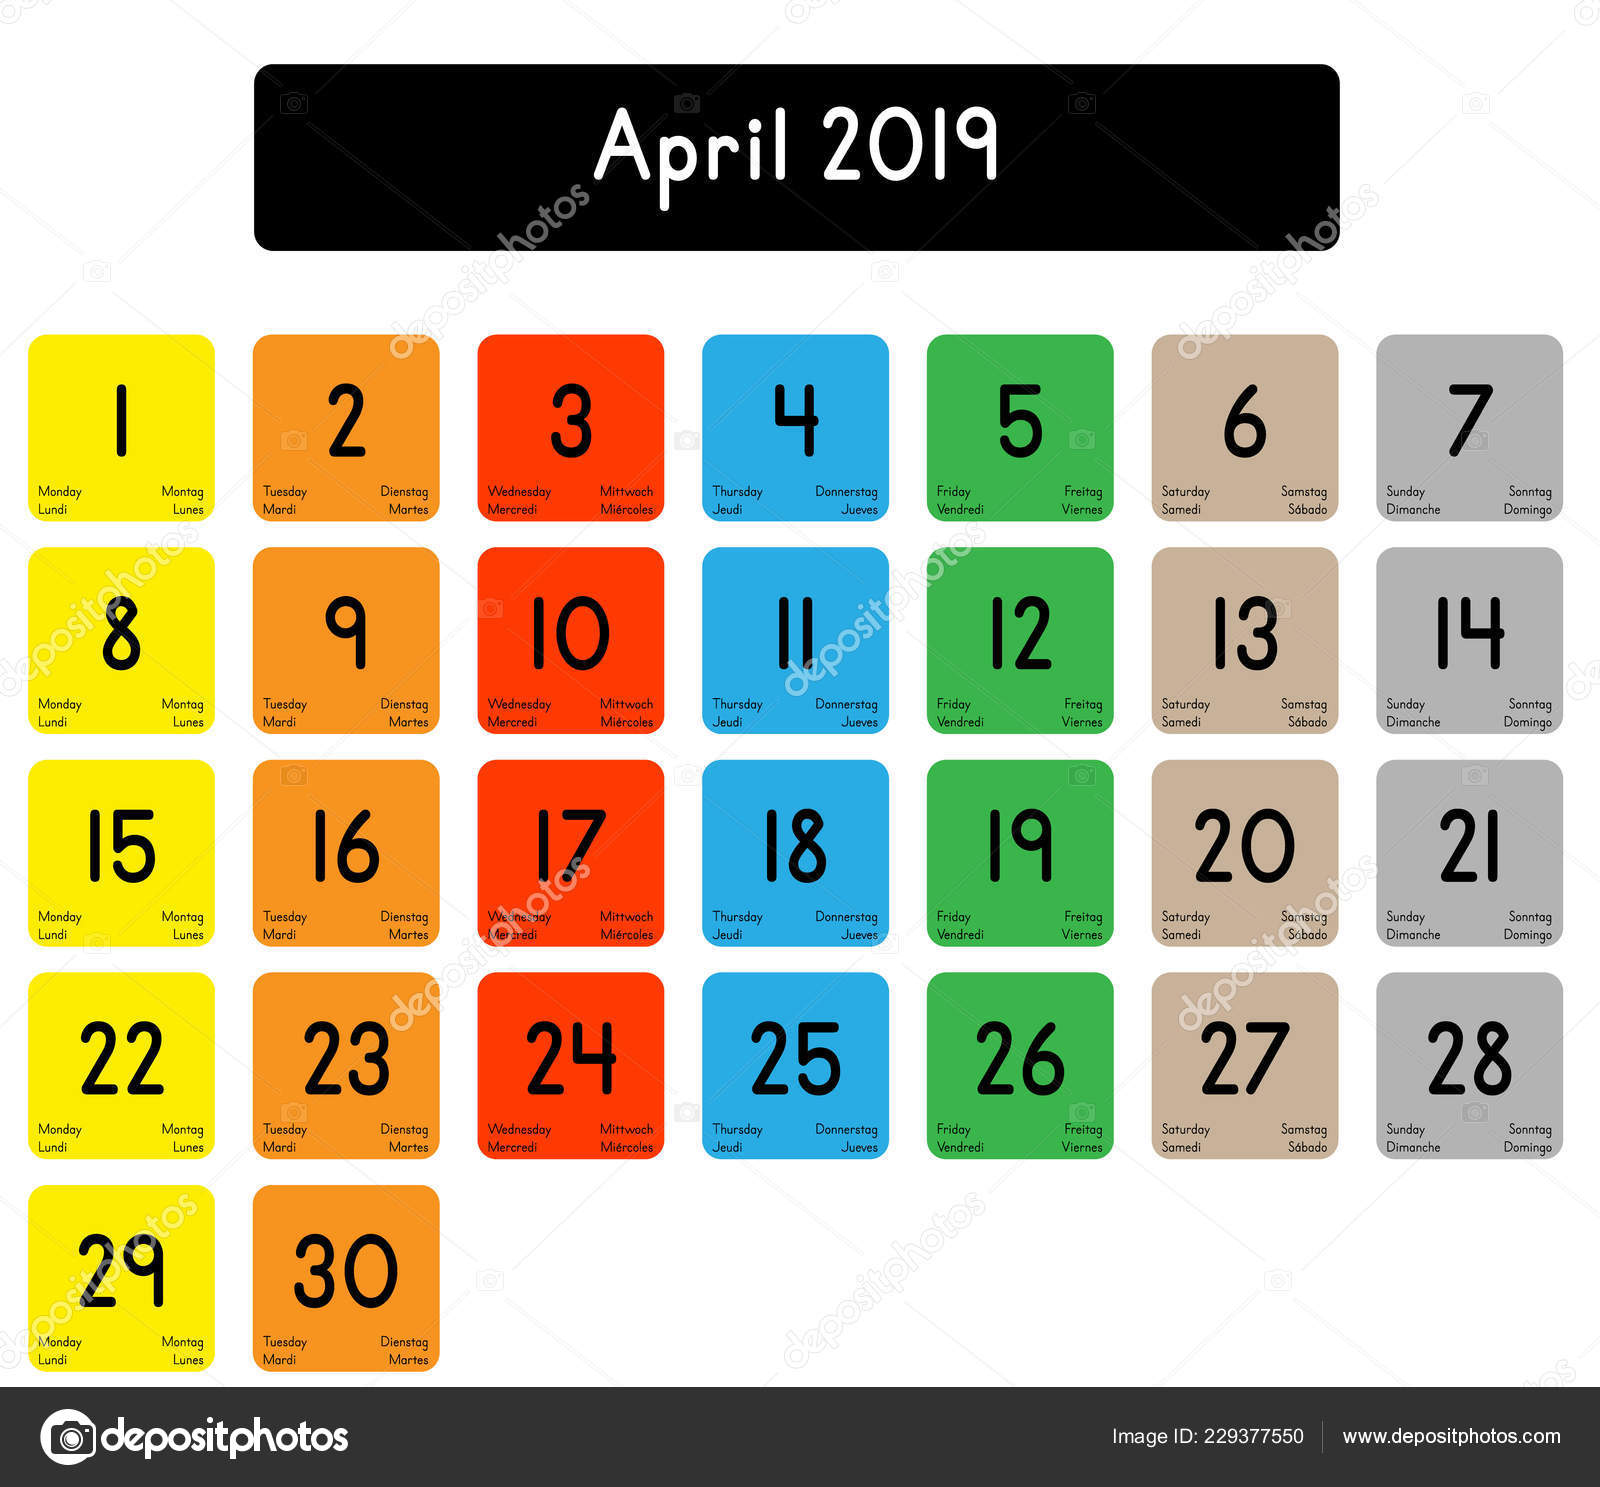 Detailed Daily Calendar Month April 2019 — Stock Vector